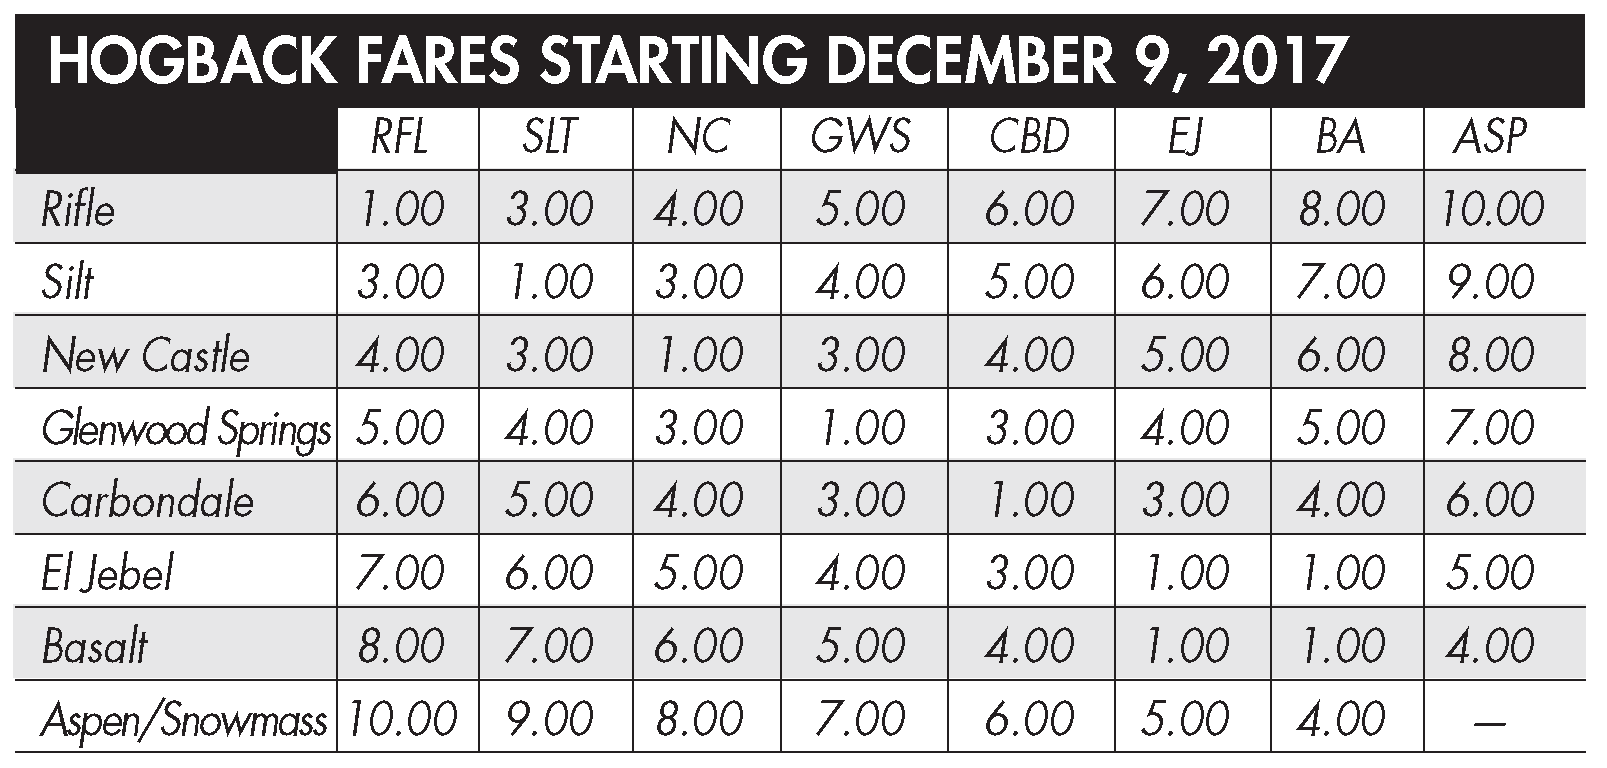 hight resolution of hogback bus service will remain fare free between rifle and glenwood springs through december 8 2017 please check the fare chart below for fares starting